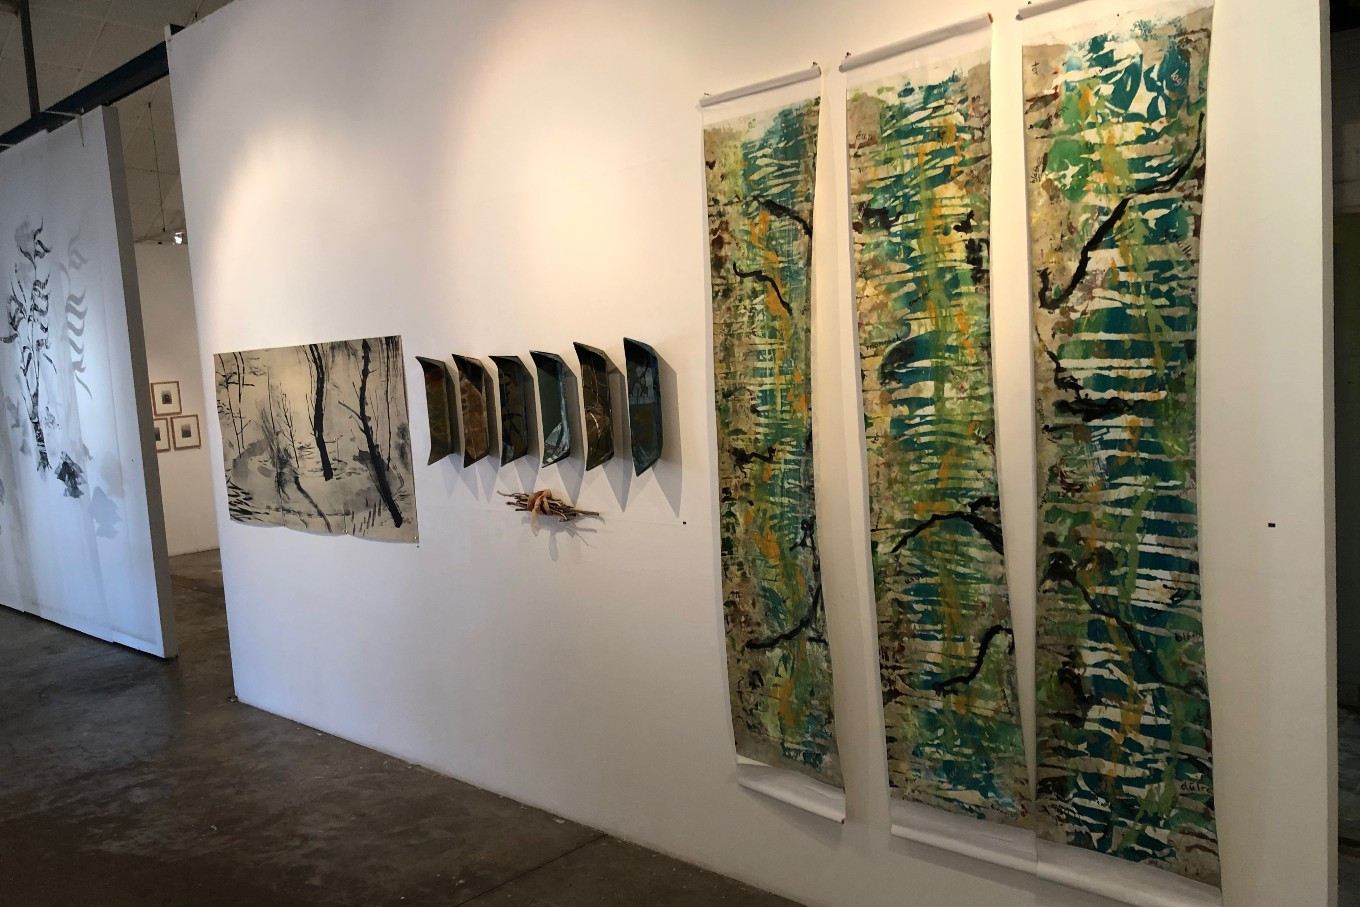 Works on display at the NCCA (from right): 'Crompan Oisre - (Irish), Oyster Creek (1-3)' 2019, Bronwyn Rodden, 'Drift'.